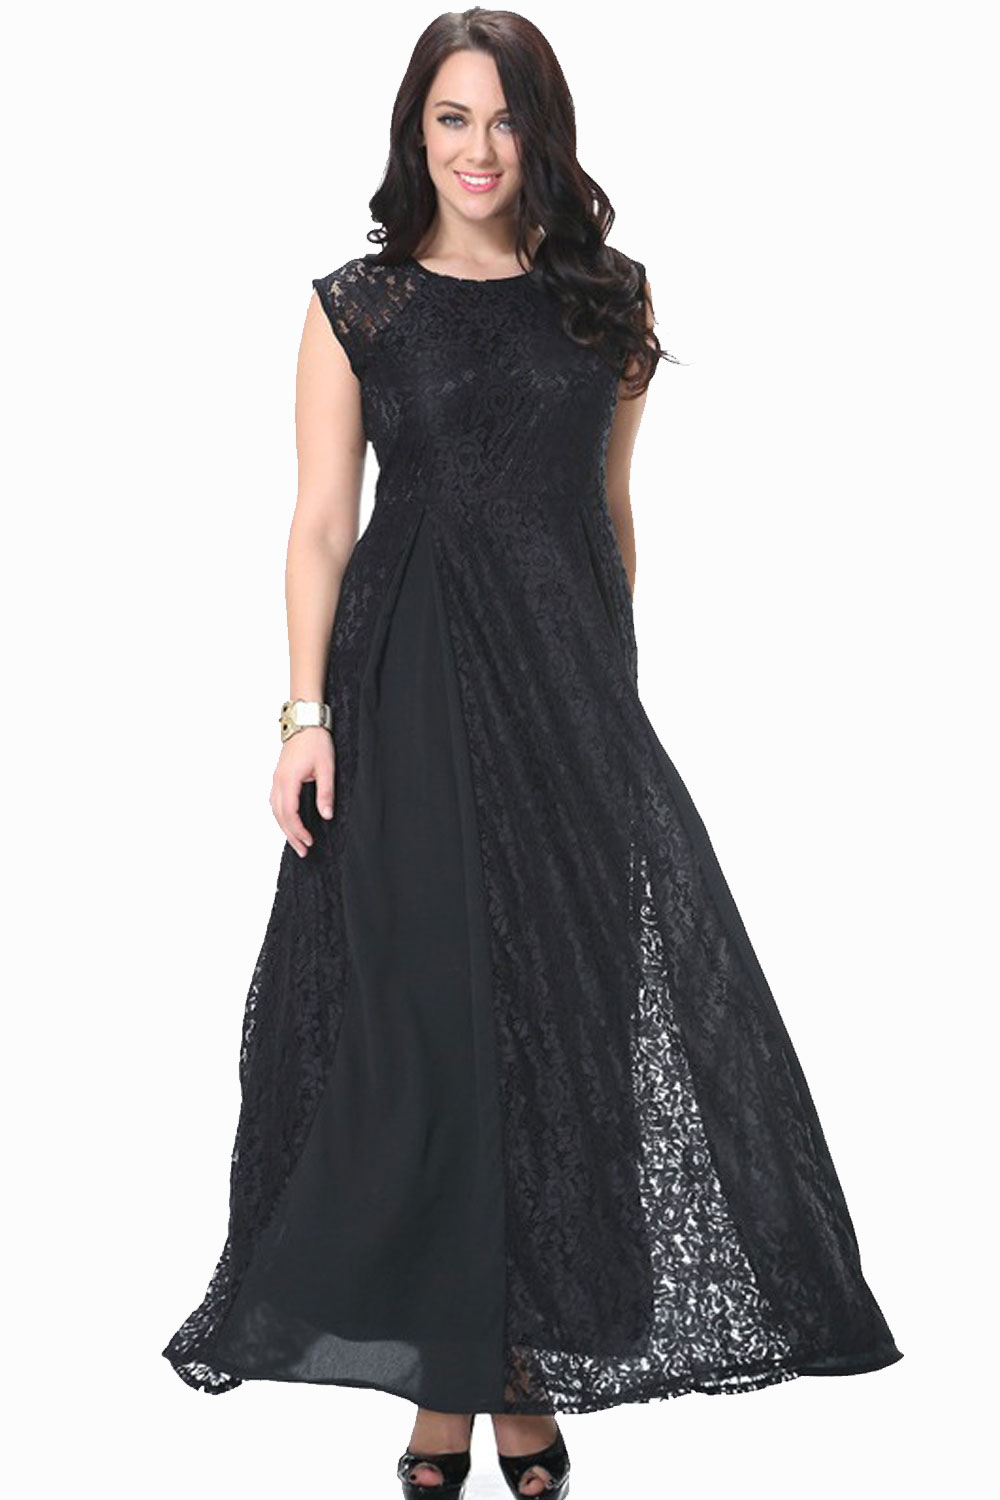 Shop the Latest Women's Fashion black Dresses,trend black Dresses Online at pc-ios.tk SHIPPING Worldwide No Minimum Order!